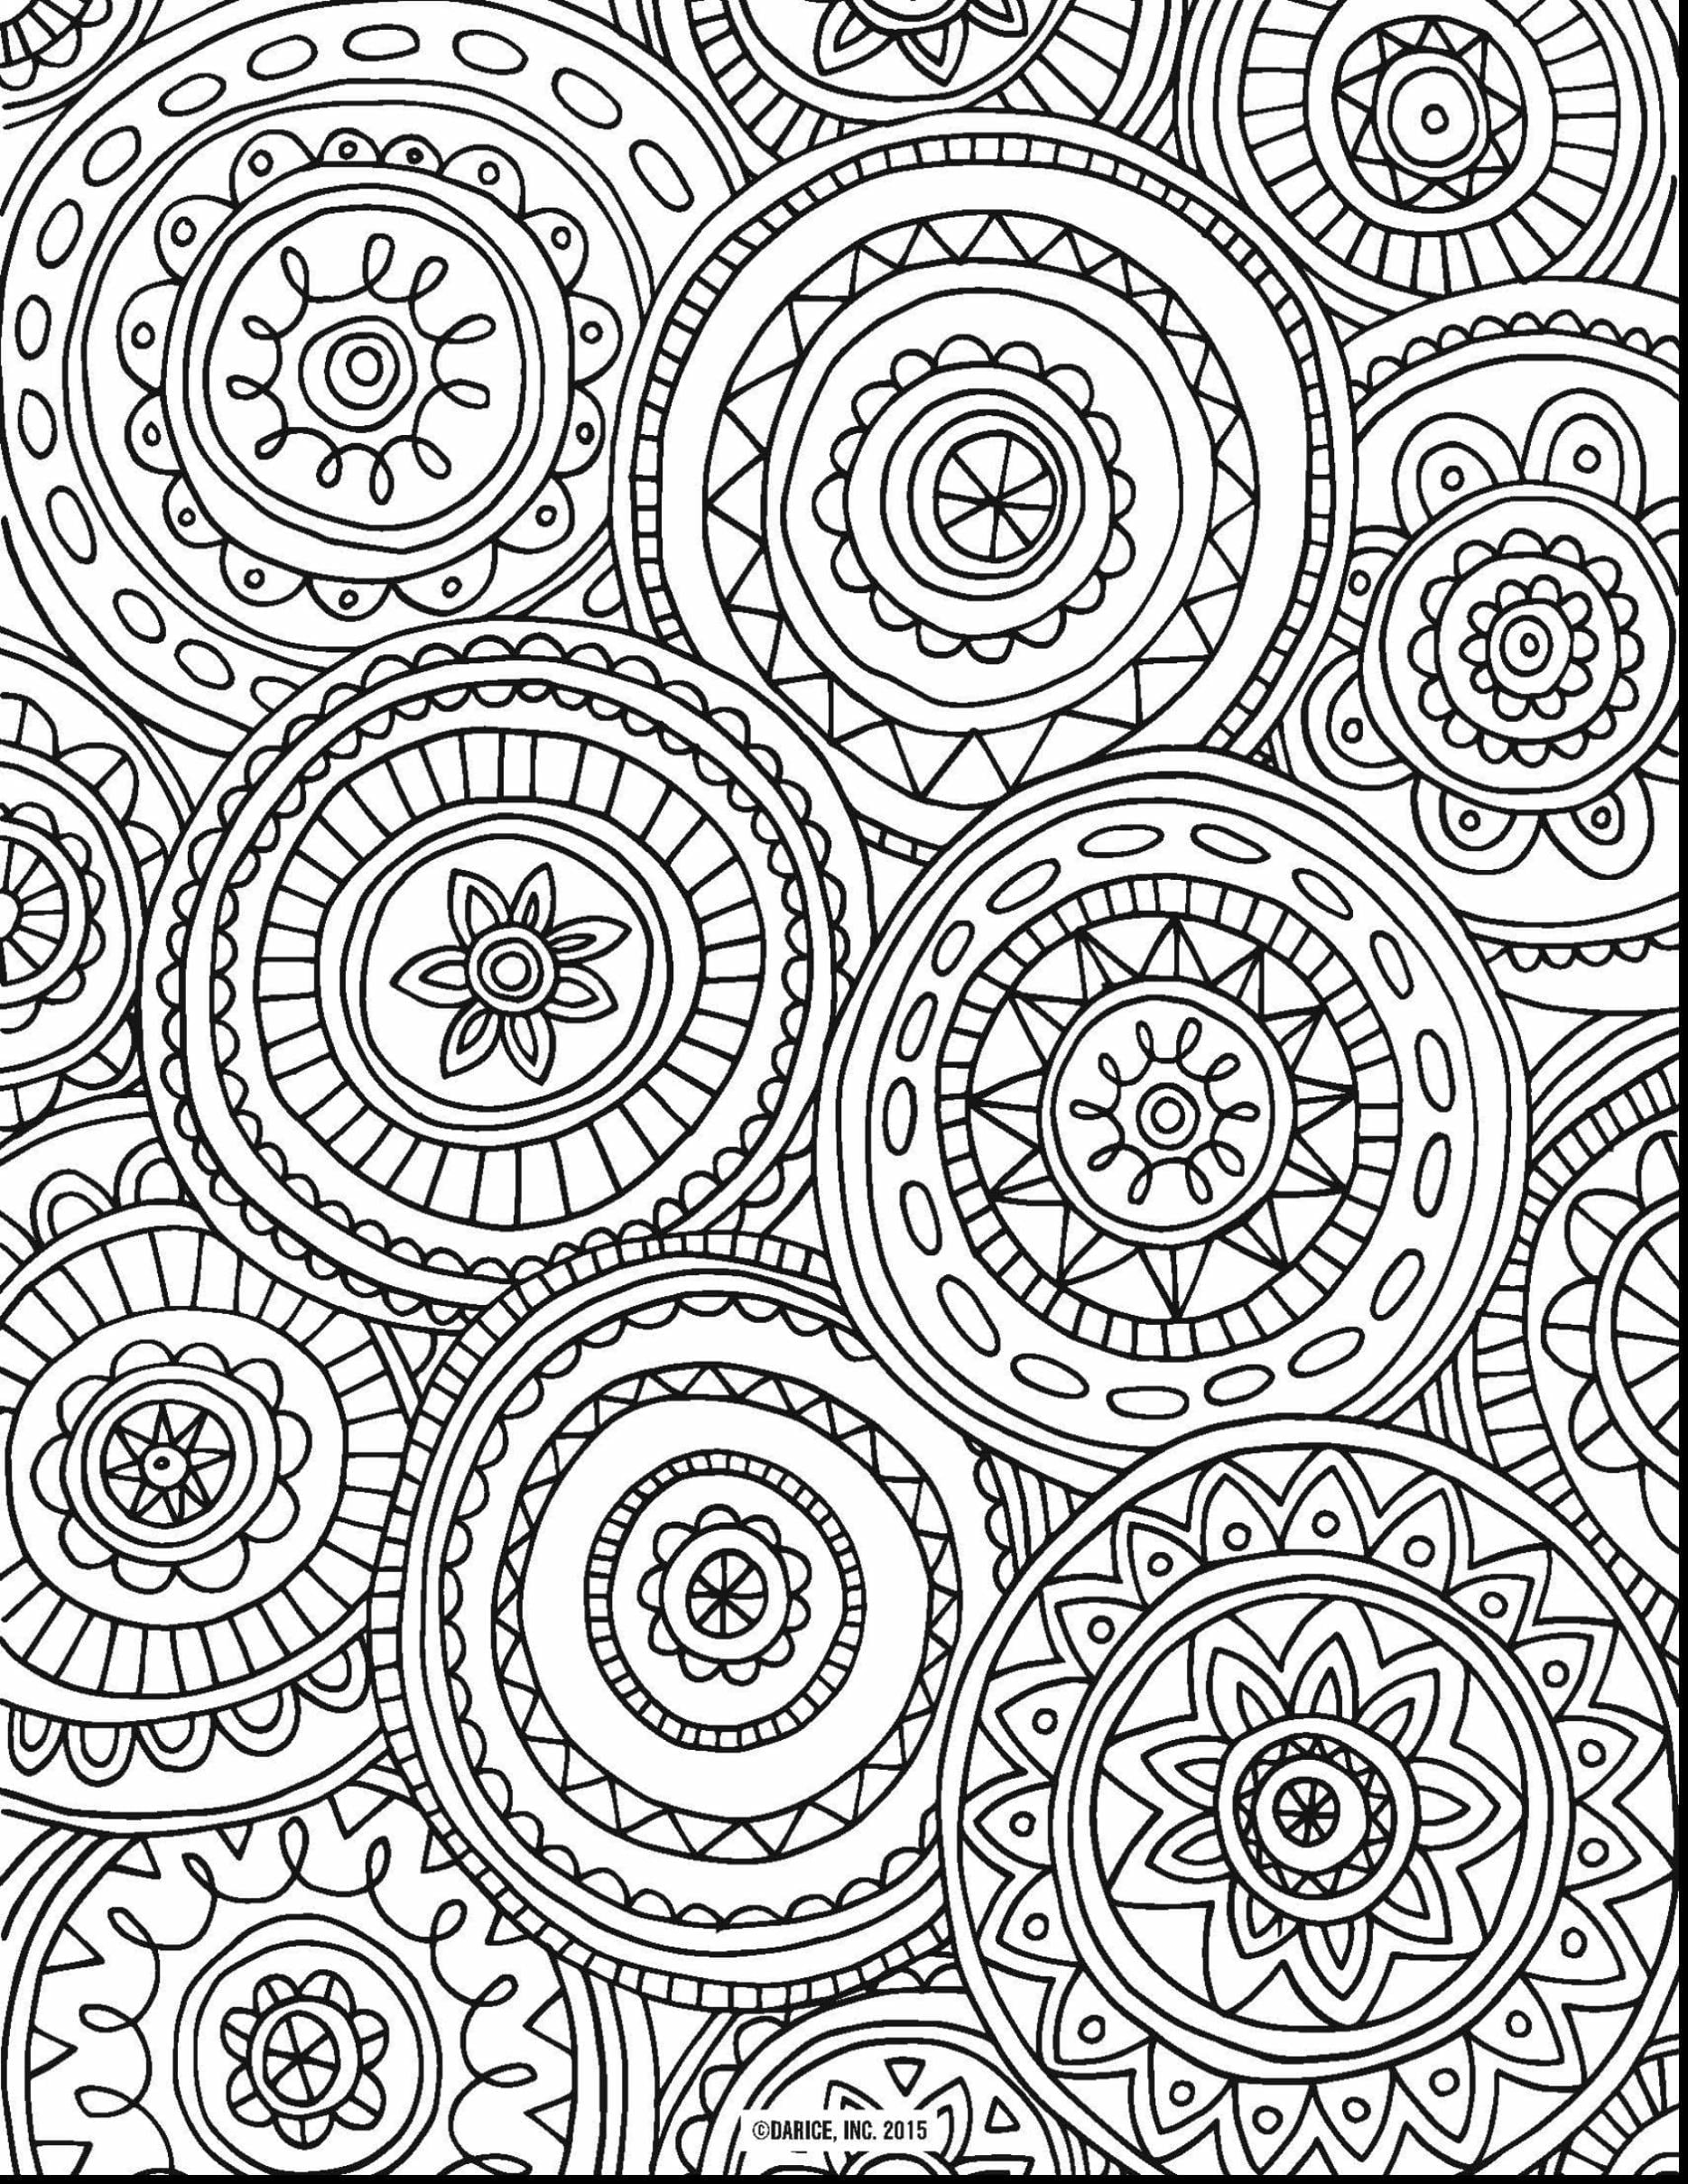 Now Find Printable Adult Coloring Pages 3812  642